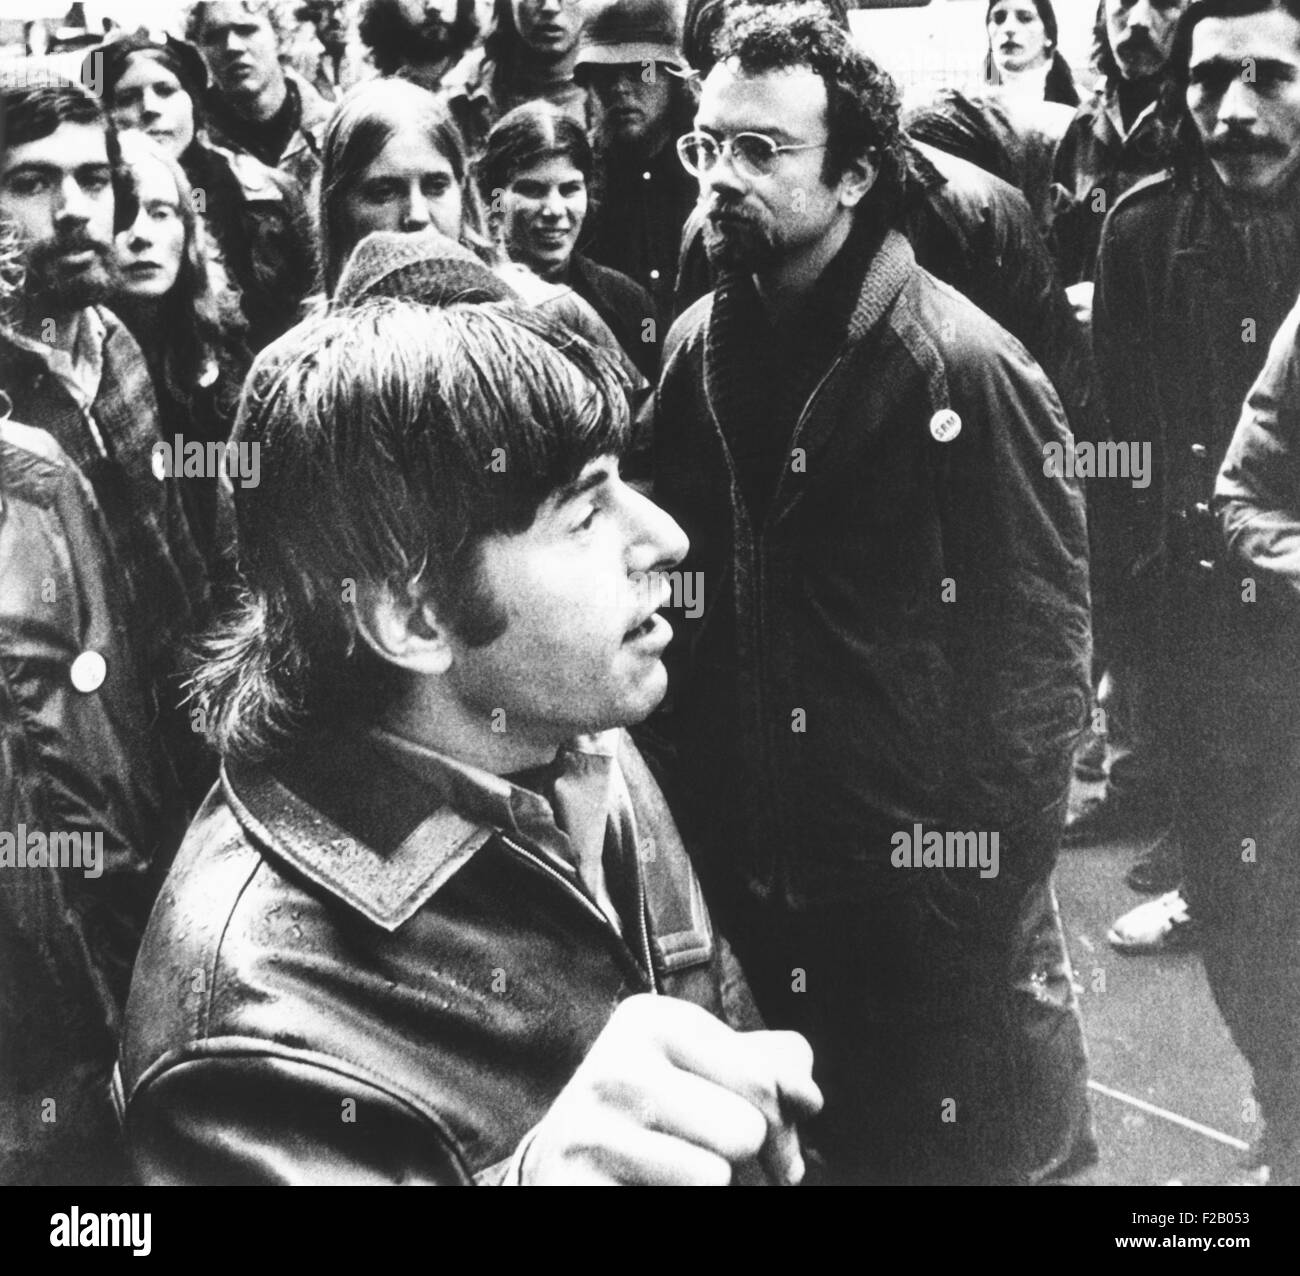 Self-proclaimed Maoist, Prof. H. Bruce Franklin, speaks with supporters at Stanford University. Jan. 28, 1972. He - Stock Image